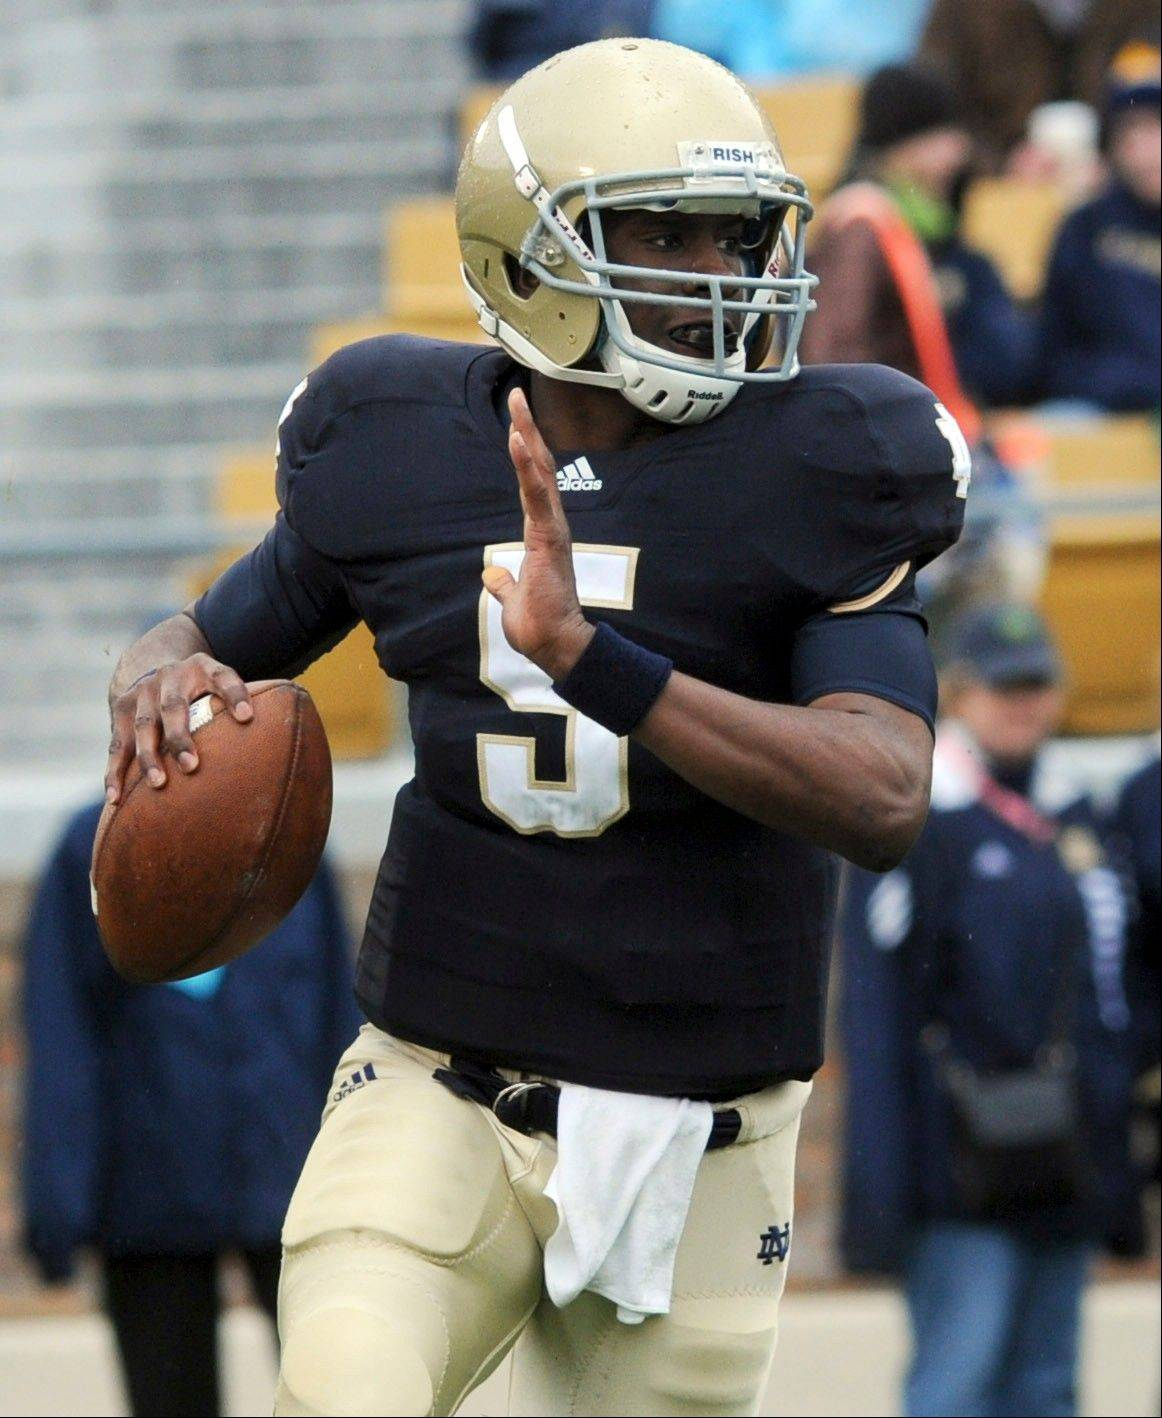 Quarterback Everett Golson no longer is enrolled at Notre Dame, according to a school spokesman. Golson led the Fighting Irish to an undefeated regular season and the national championship game in his first season a starter during his sophomore season.